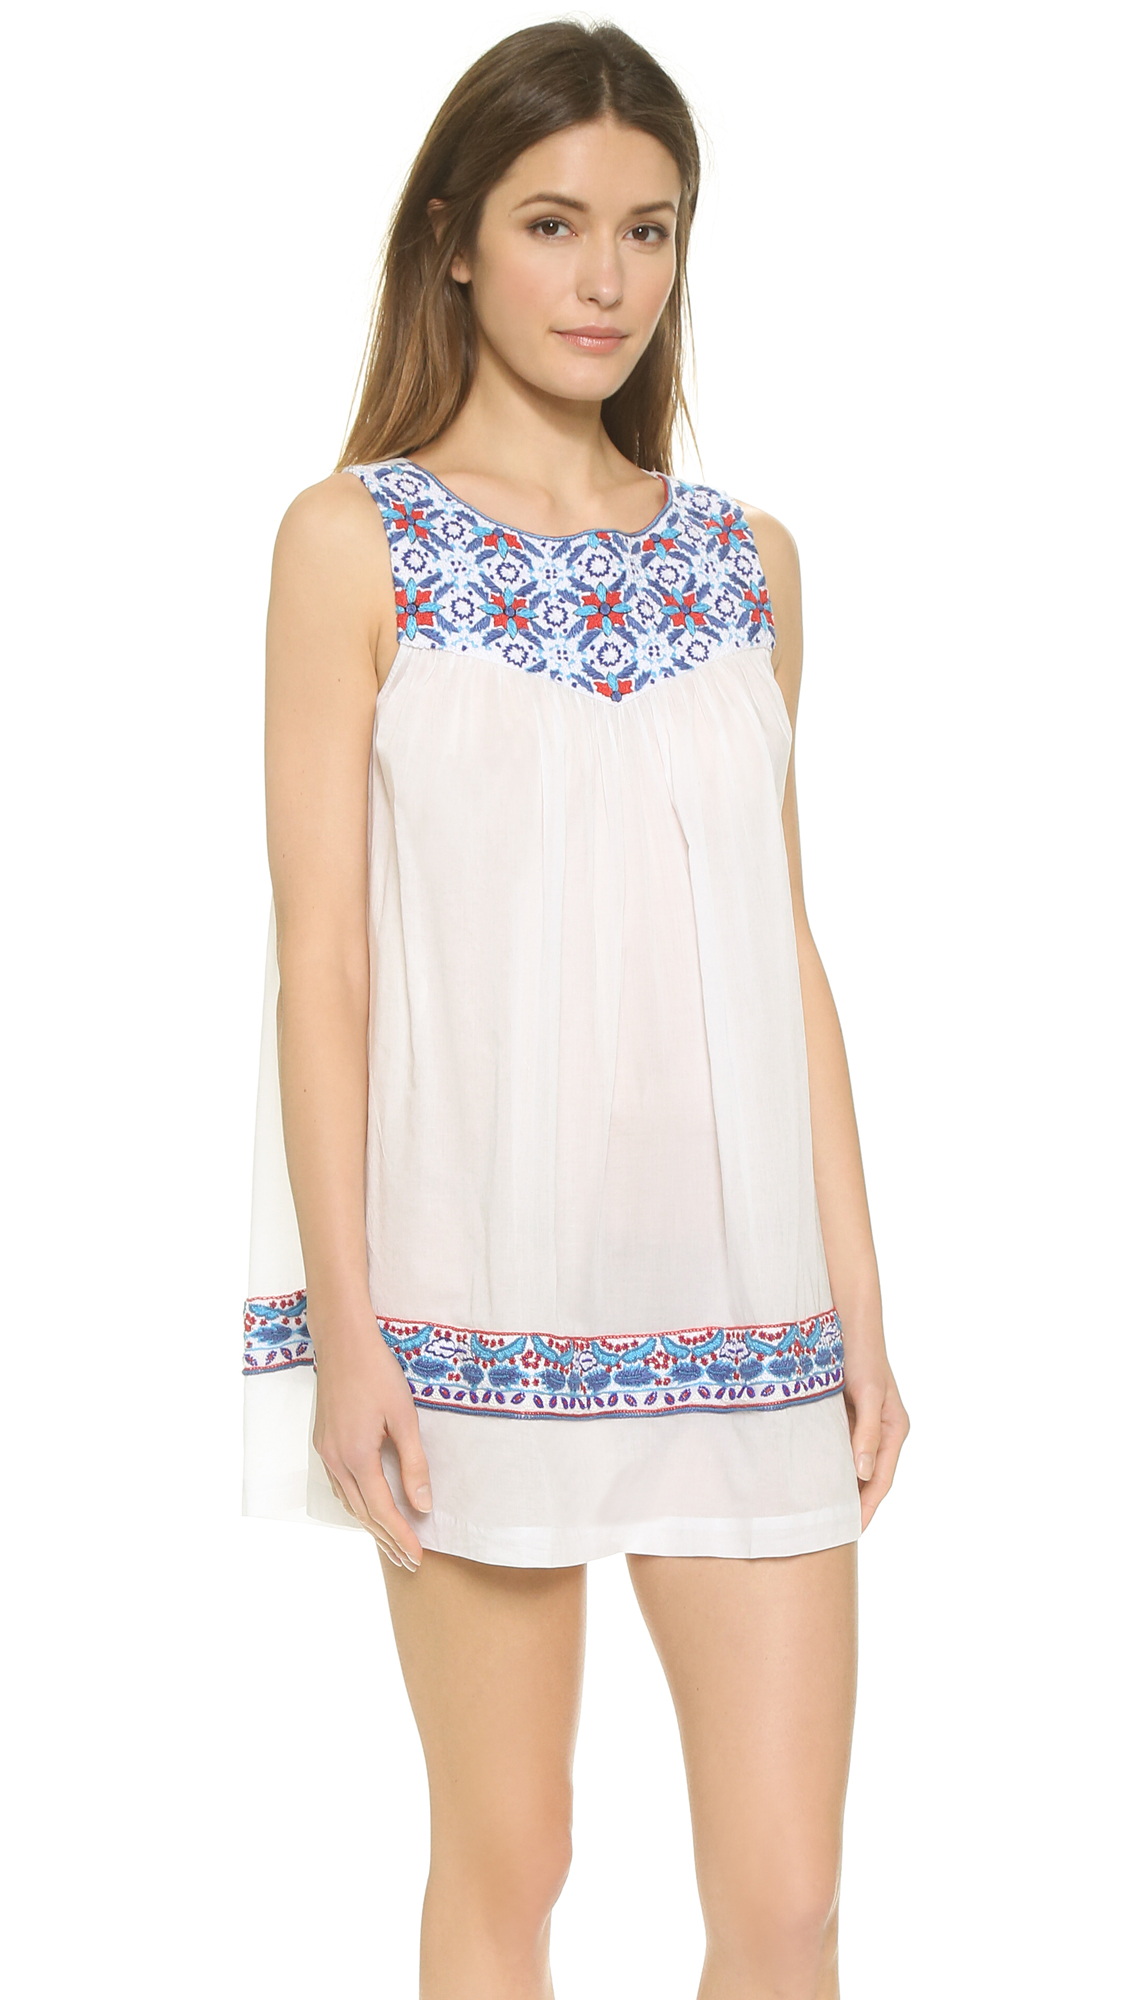 Pia pauro blue tiles embroidered beach dress white in